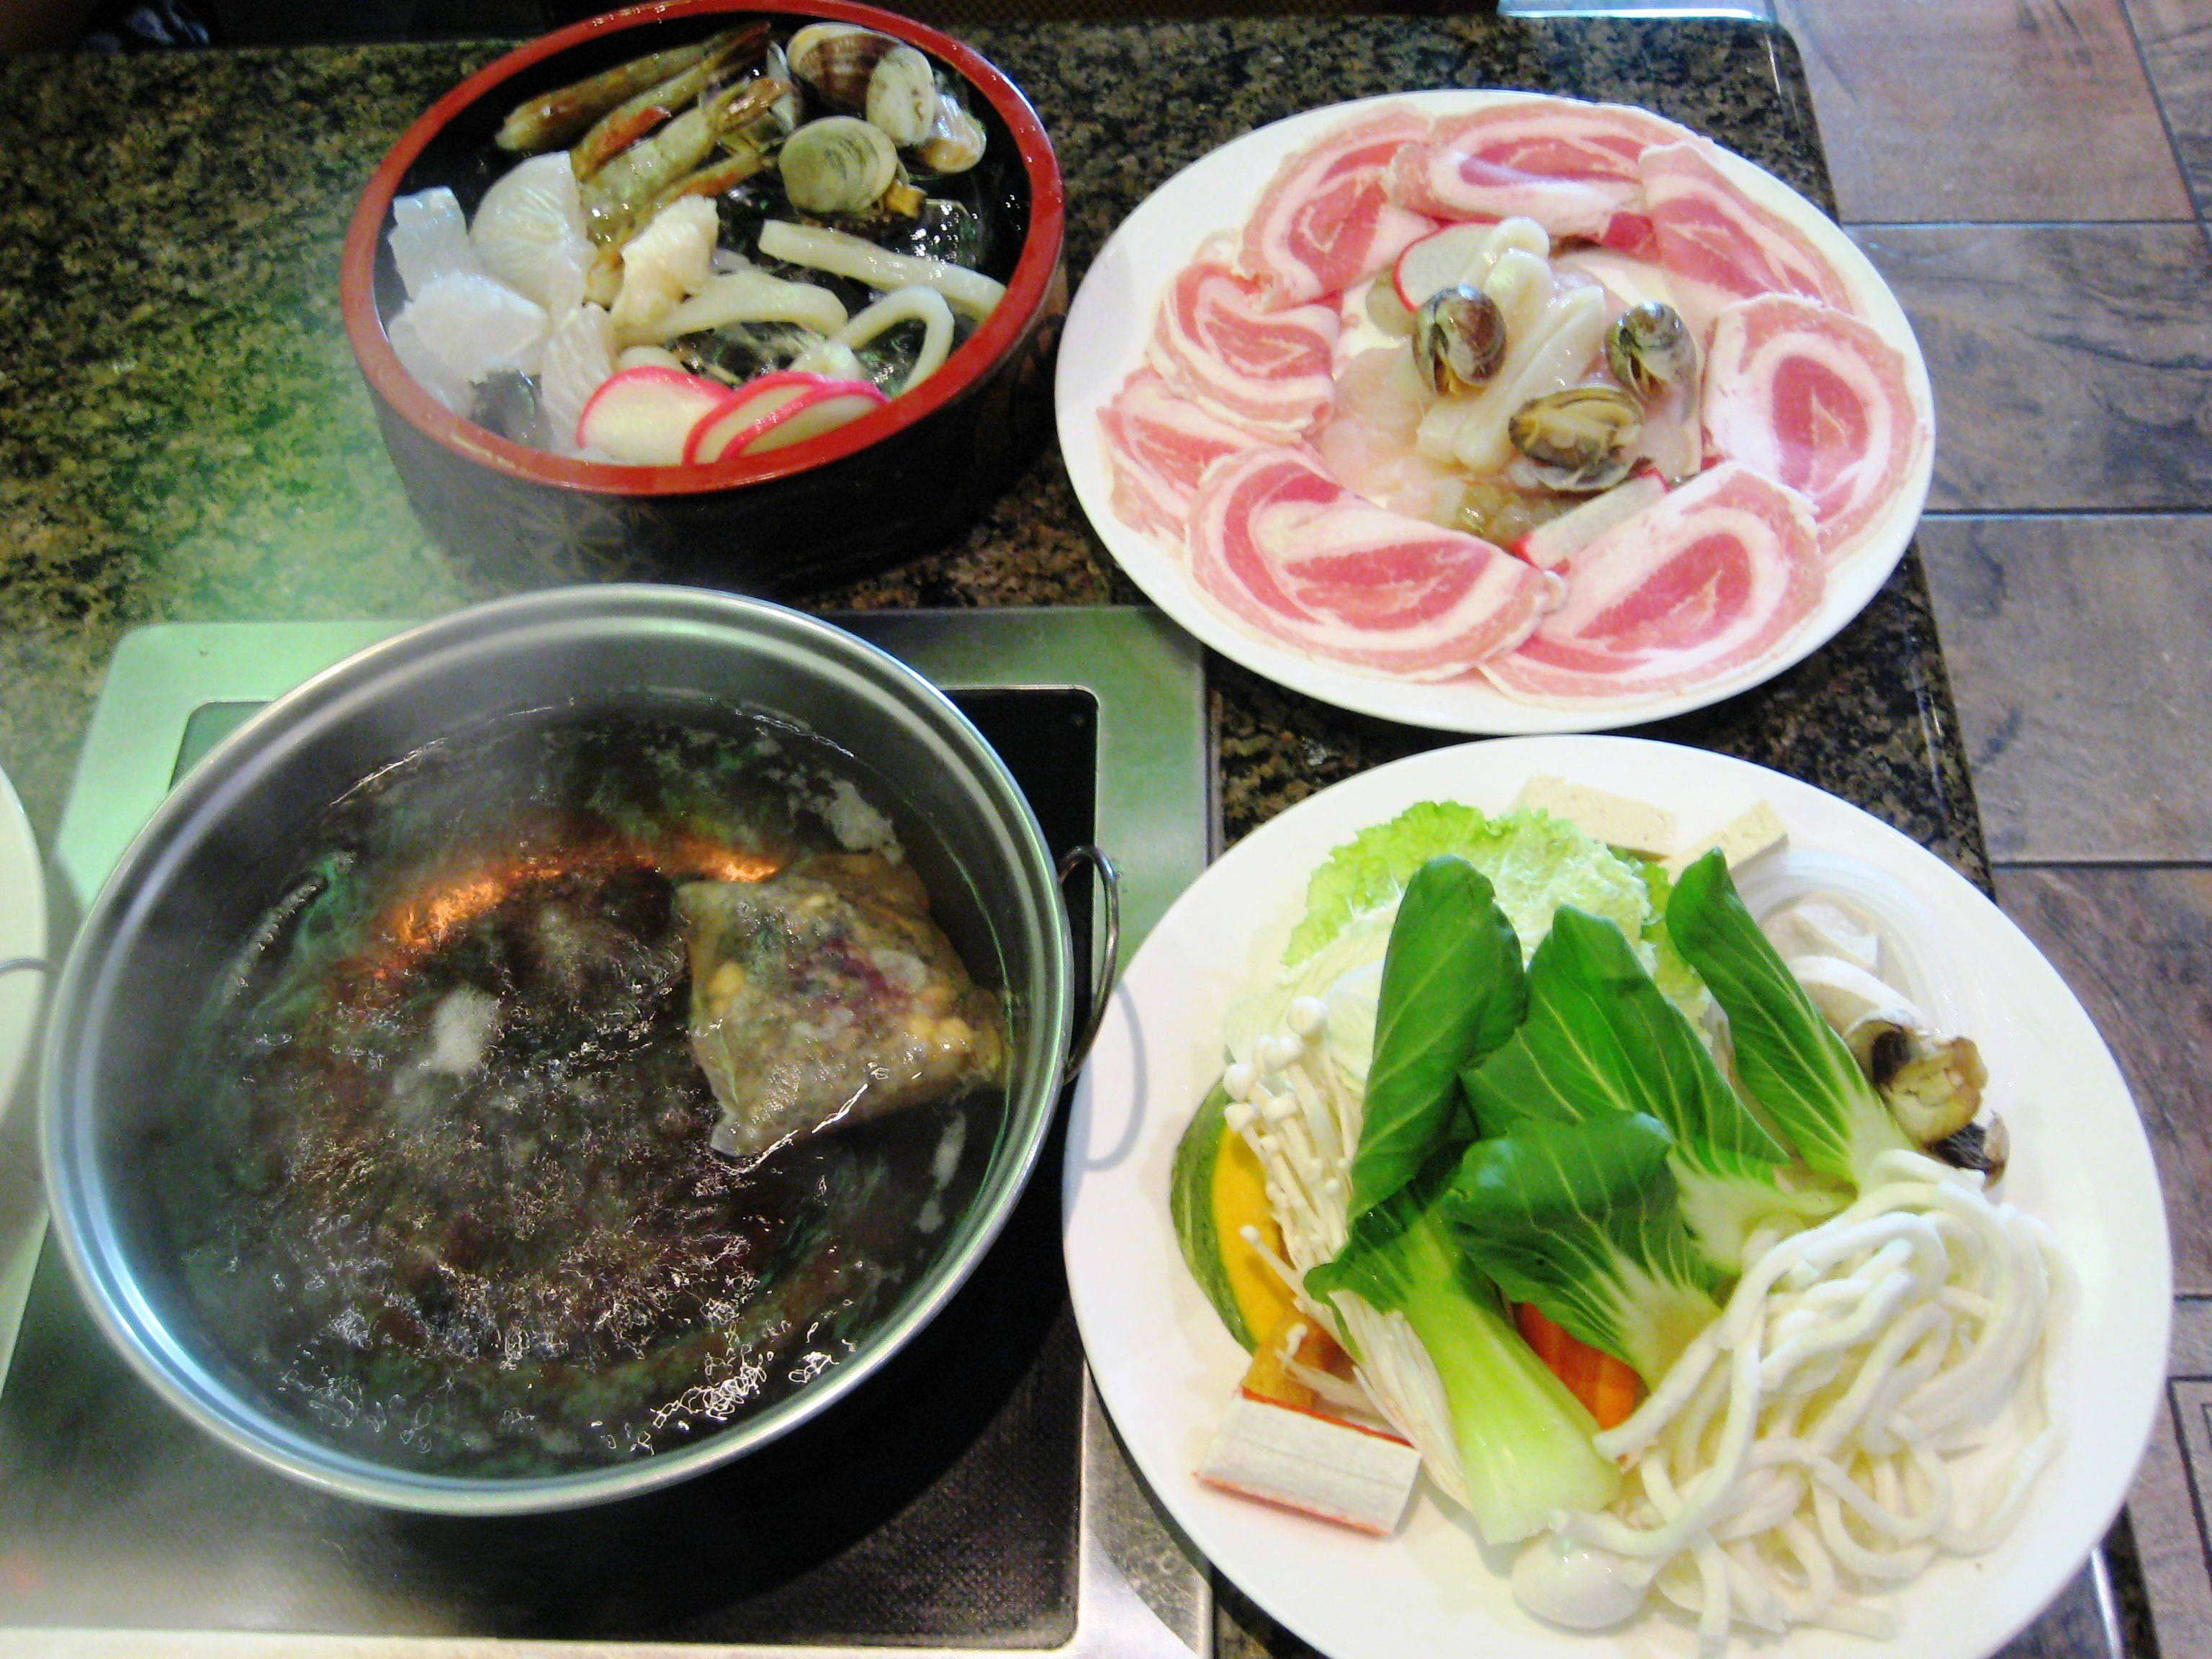 Hot pot by any other name